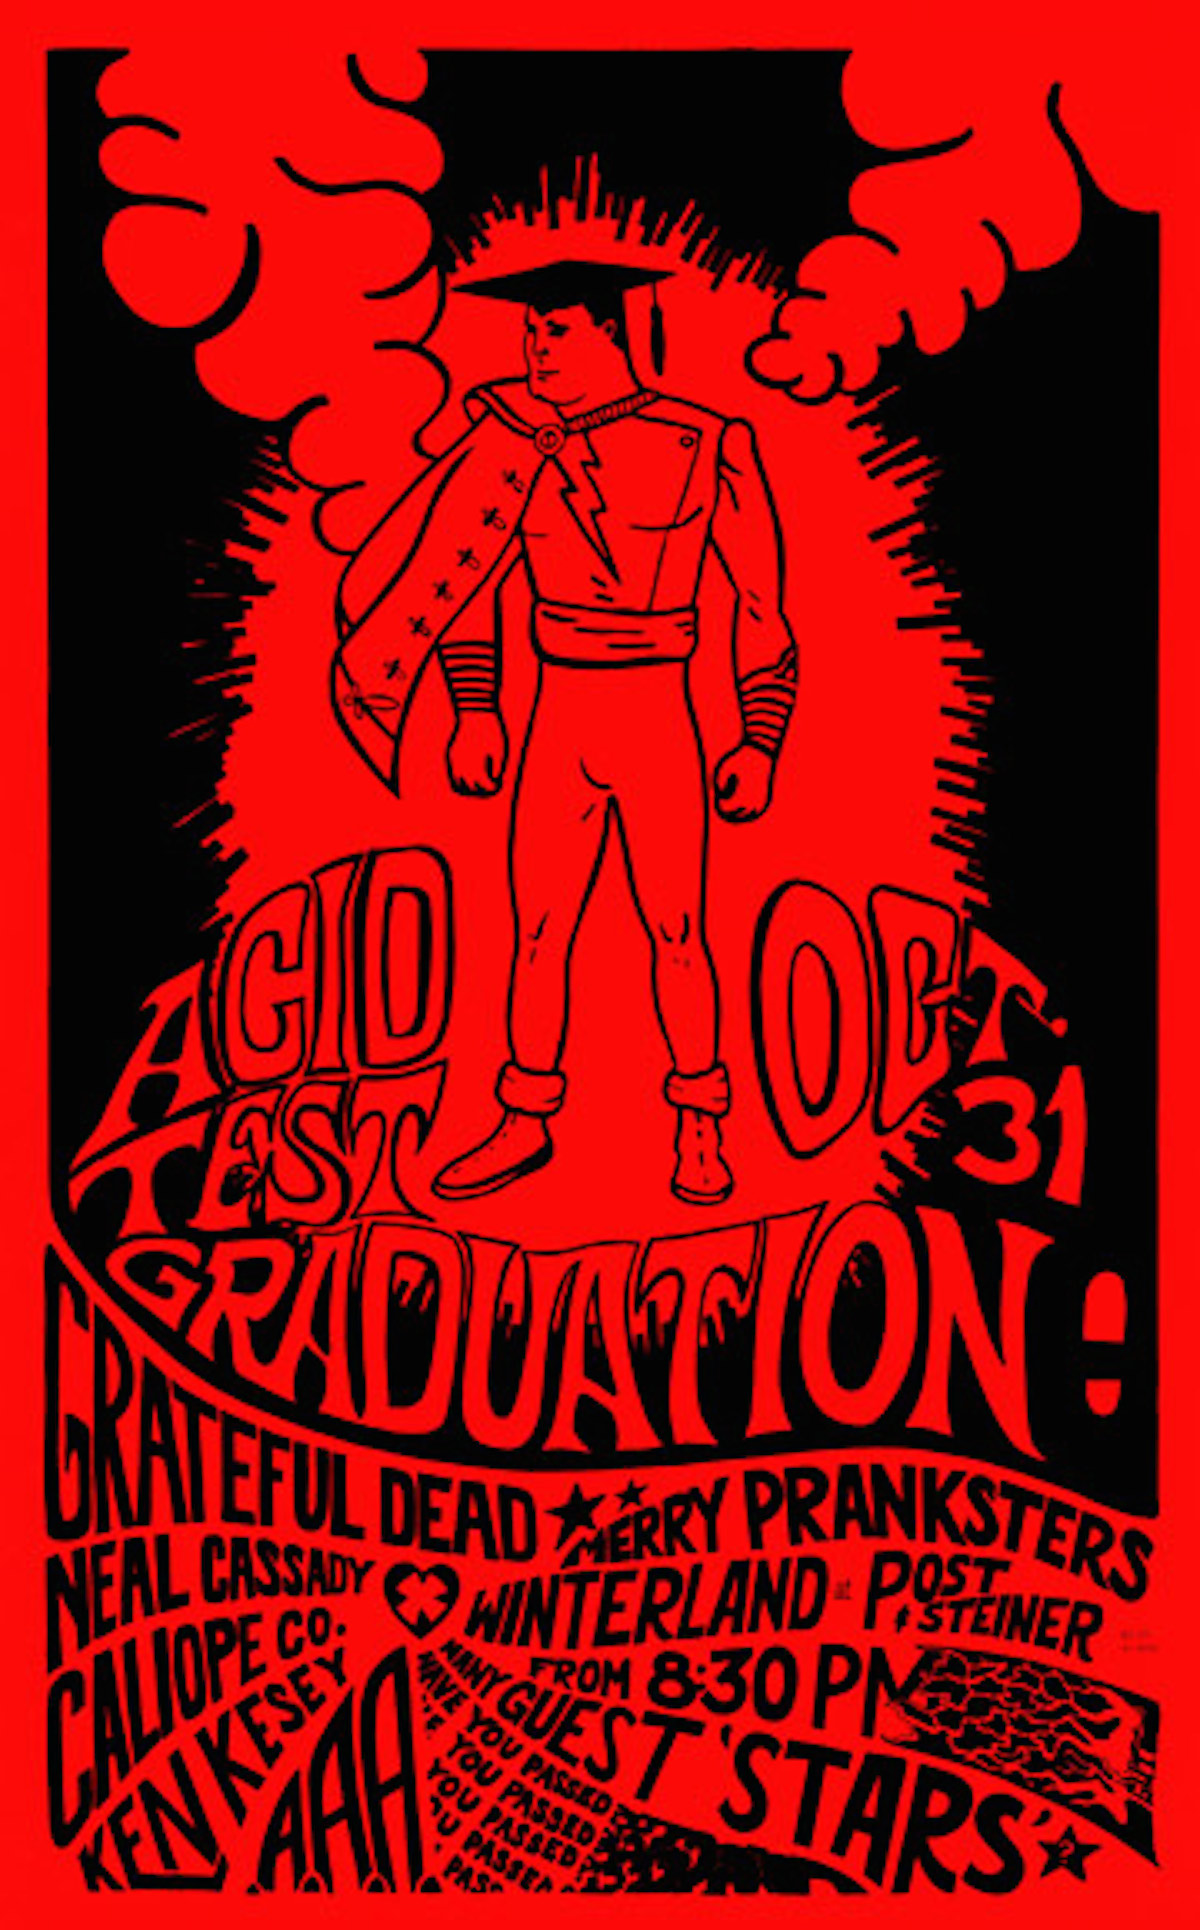 LSD Acid Merry PrankstersGrateful deadThis show, whose poster was created by a Hells Angel and Merry Prankster who went by the name Gut, was canceled by rock promoter Bill Graham.